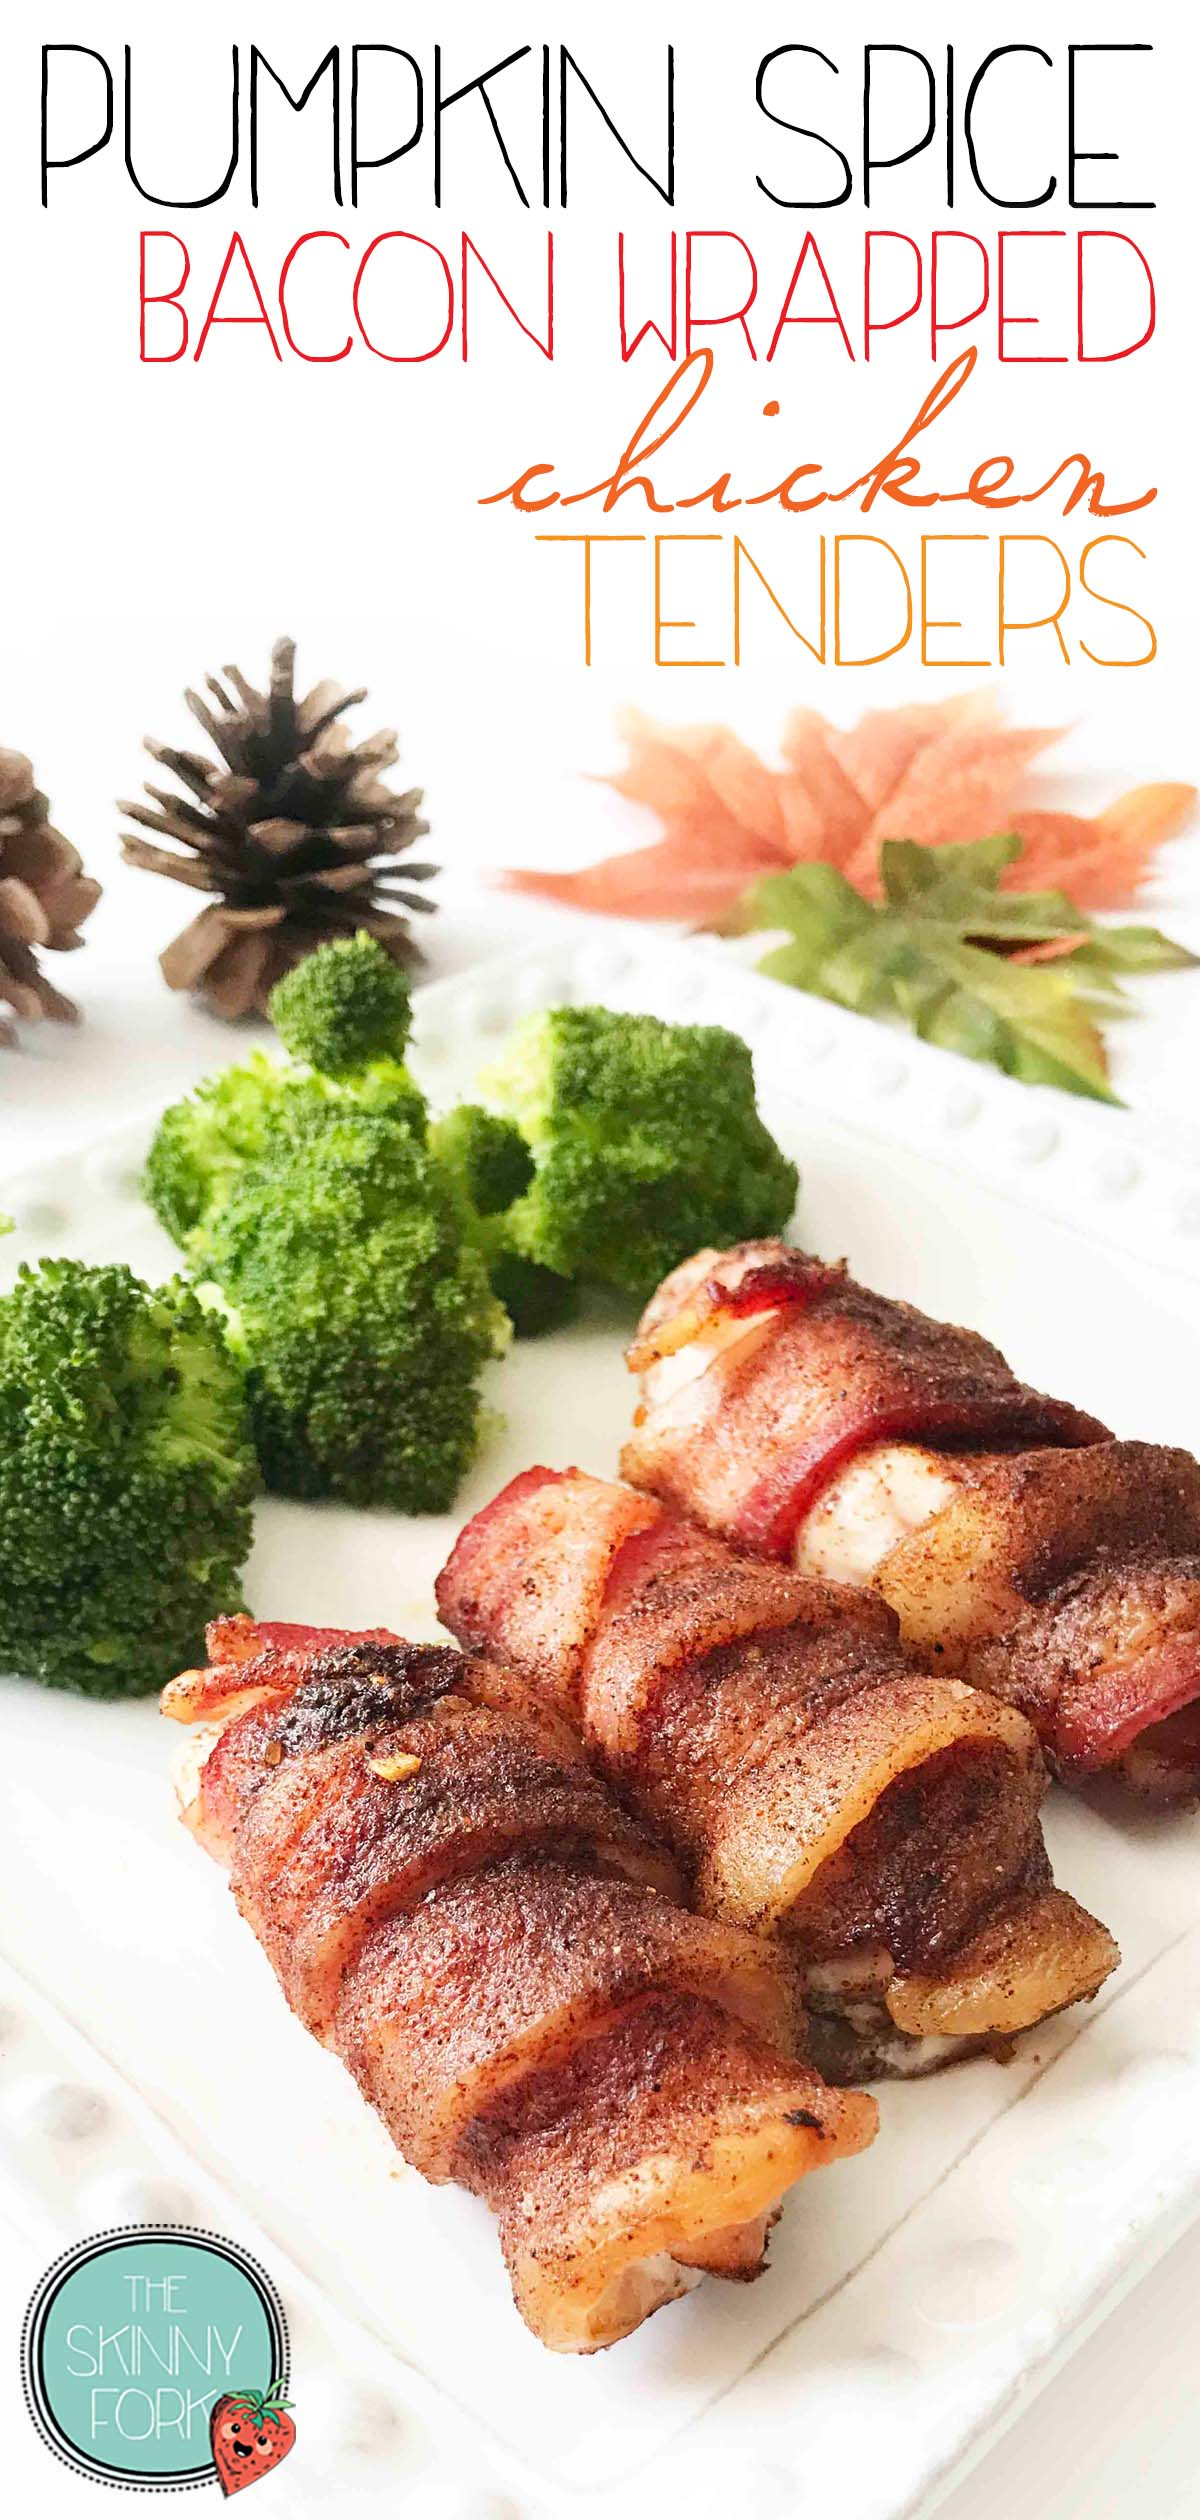 Pumpkin Spice Bacon Wrapped Chicken Tenders